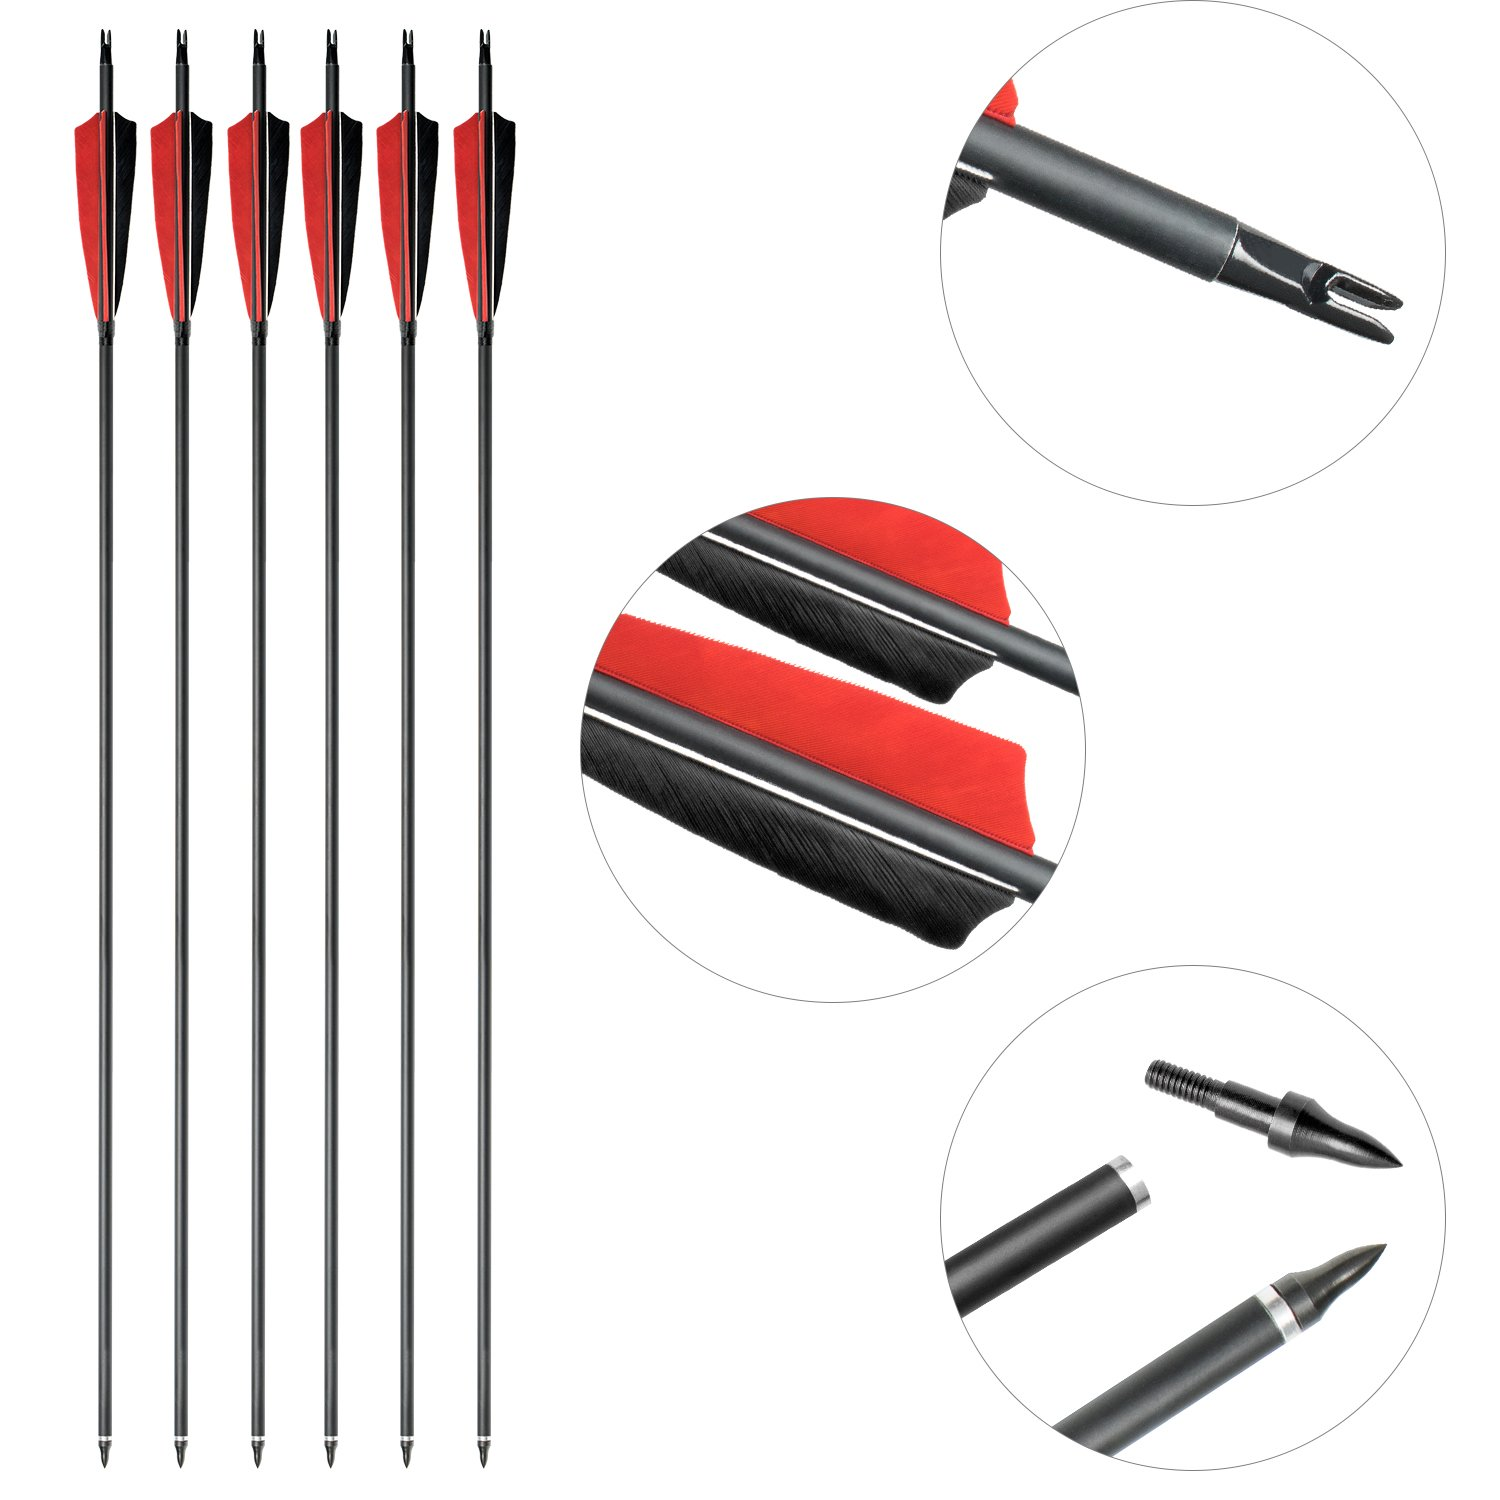 ARCHERY SHARLY 31'' Carbon Fiber Arrows Targeting Practice Arrows,5'' Black & Red Natural Feather Fletching and Replacement Screw-in Tips for Recurve Traditional Long Bow (12 Pack) by ARCHERY SHARLY (Image #3)